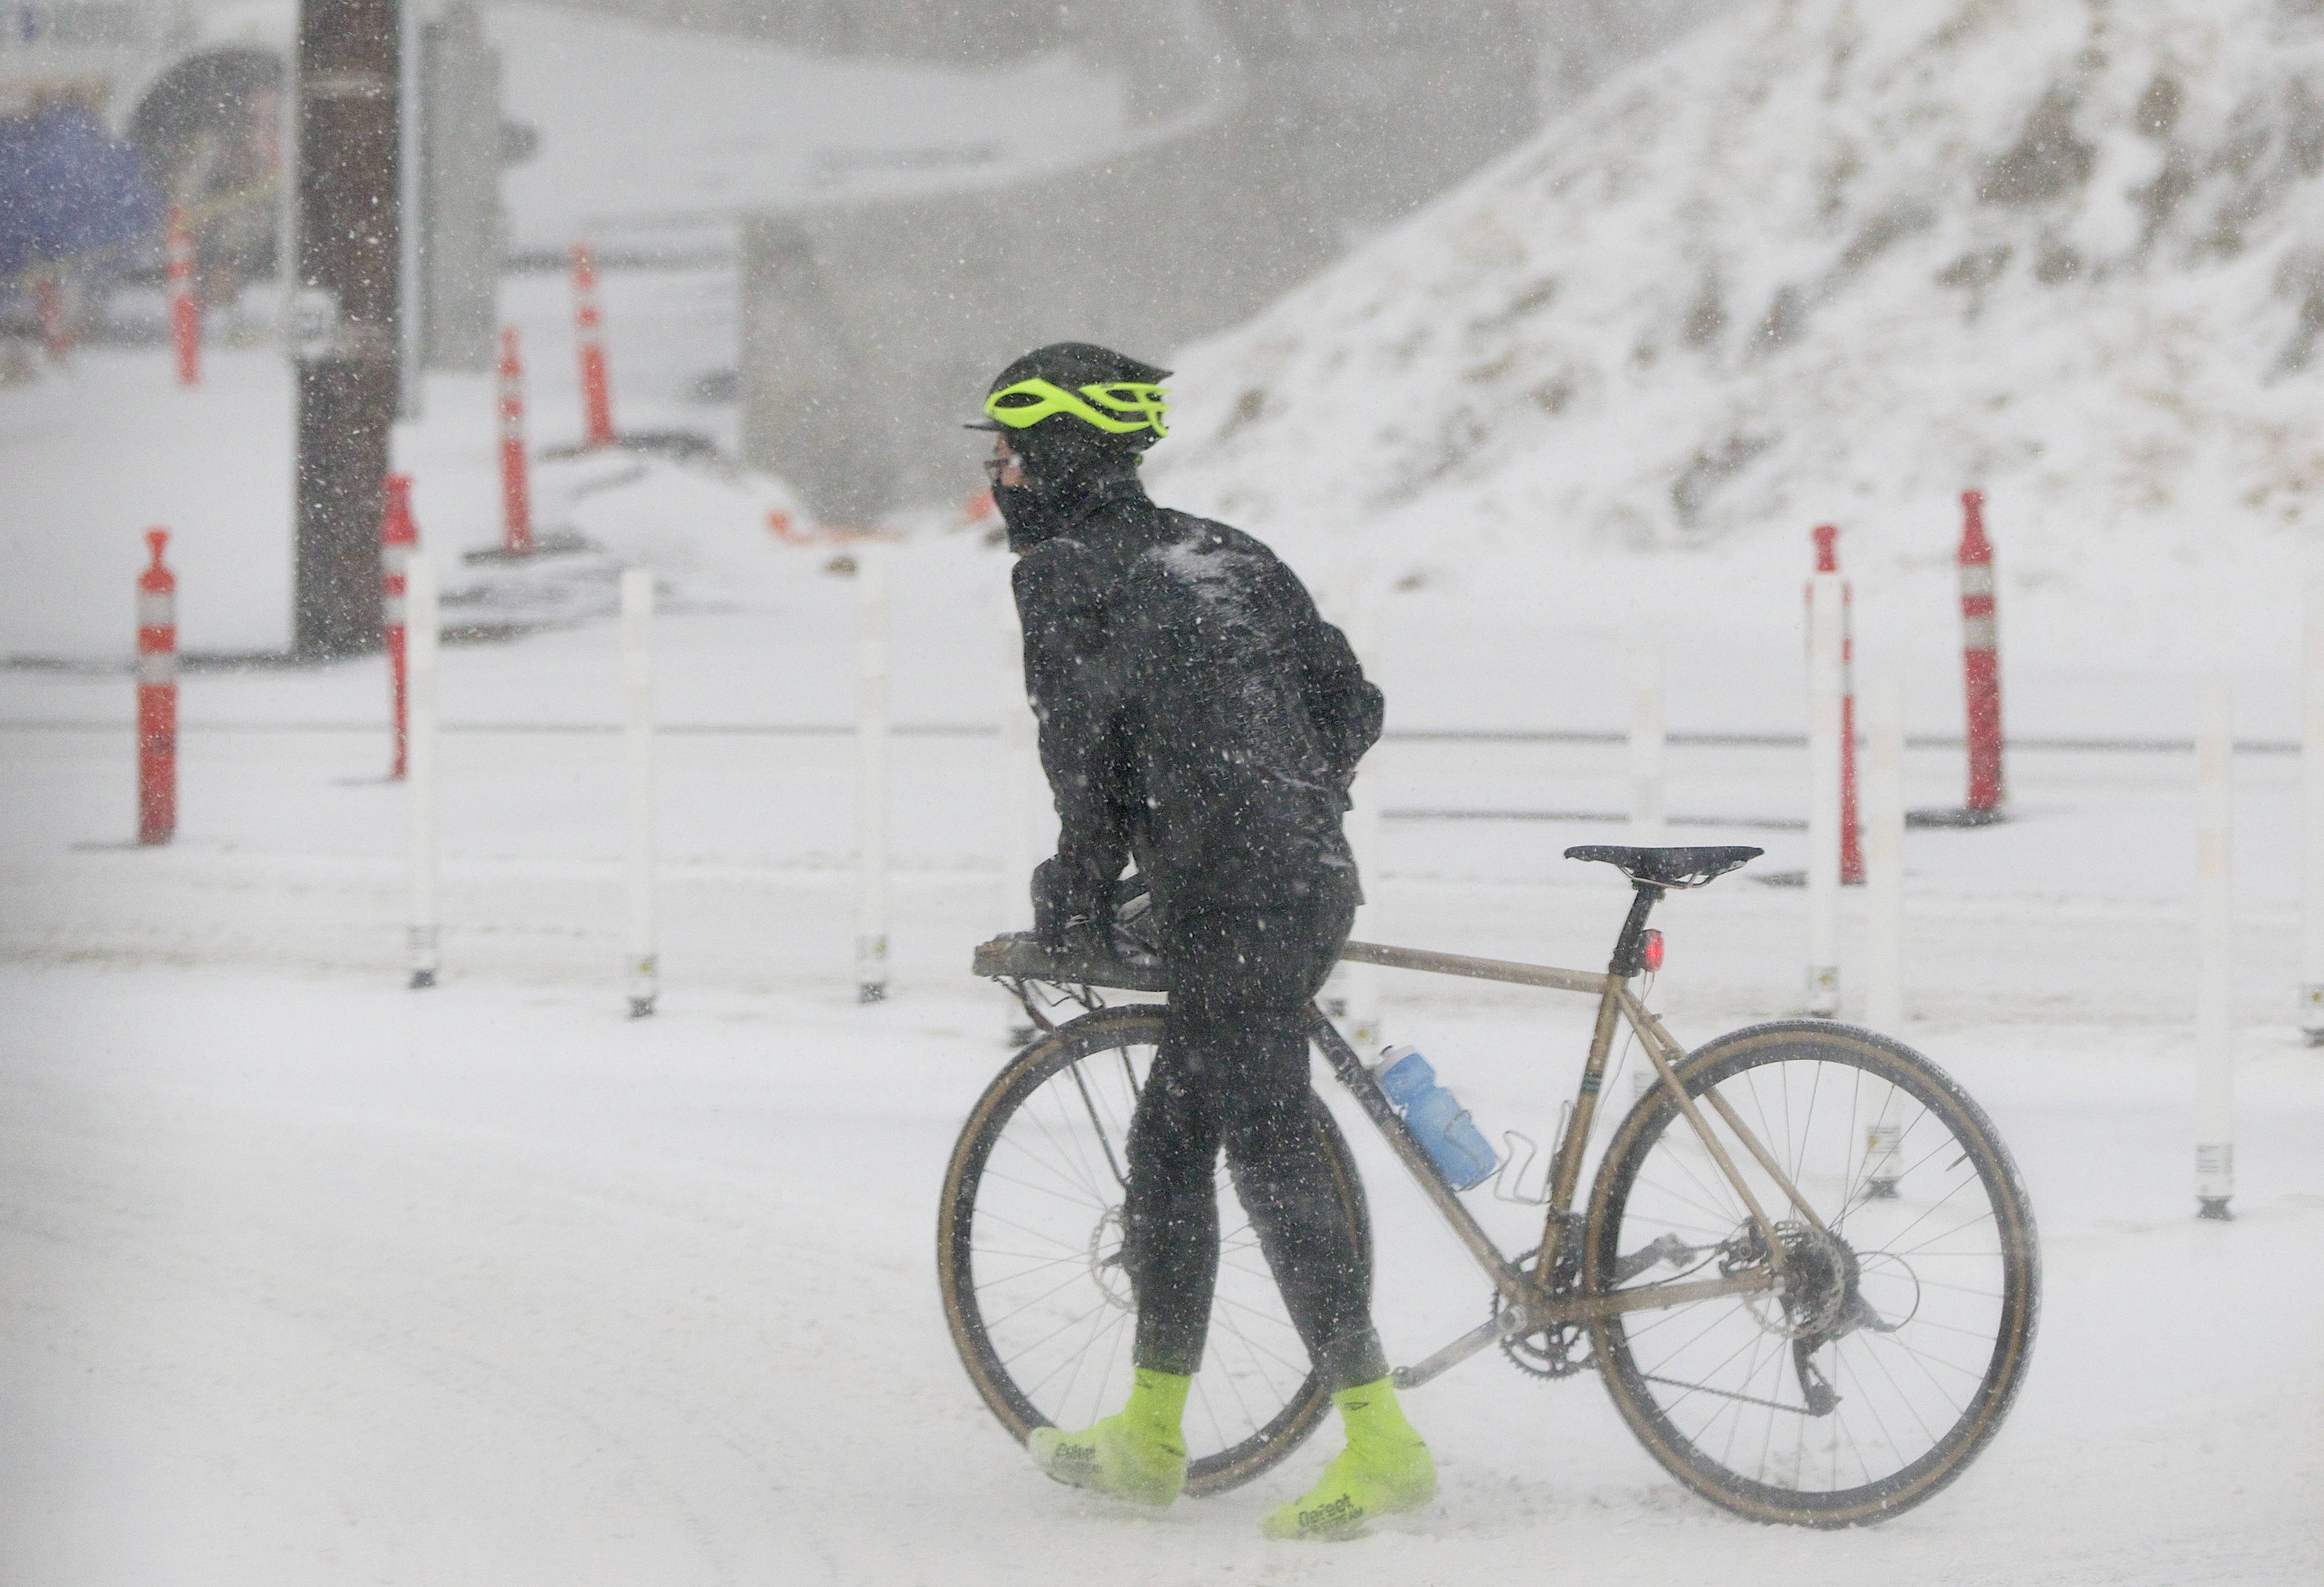 In this photo taken on Thursday, Feb. 6, 2014, s cyclist uses the pedestrian crossing at the west end of the Sellwood Bridge at Highway 43 during a snowstorm in Portland, Ore.